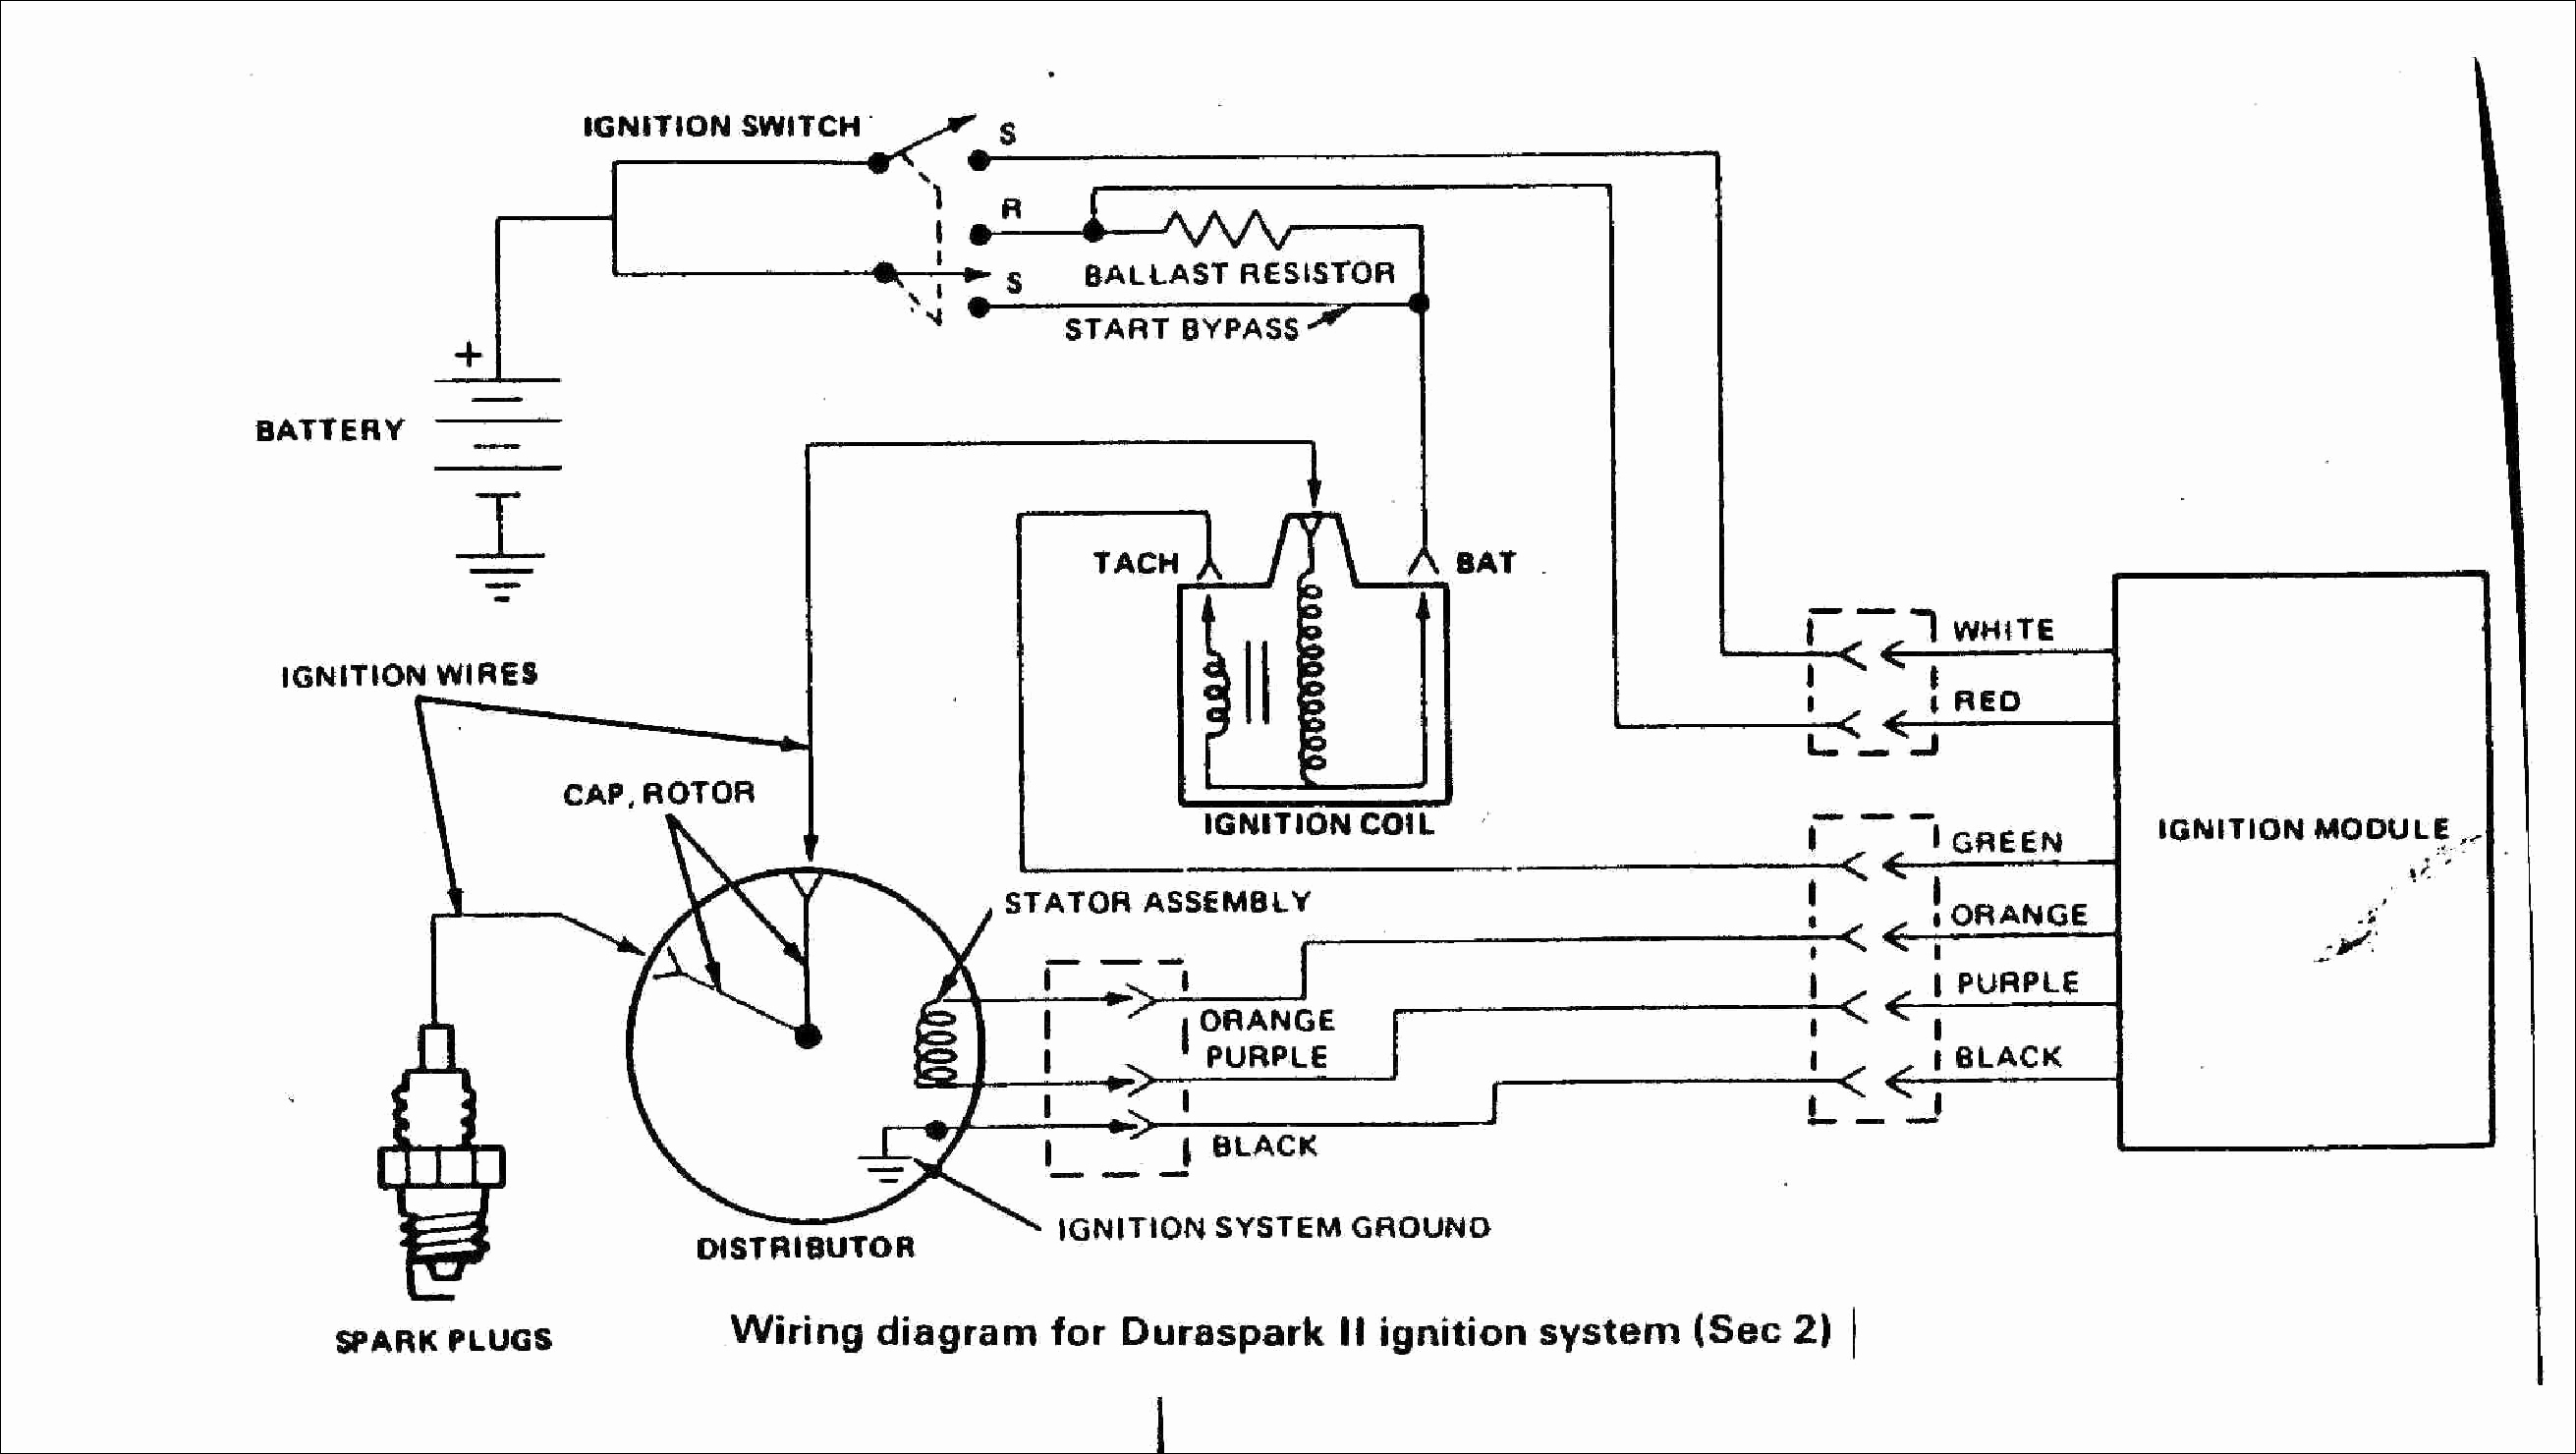 3 position ignition switch wiring diagram Collection-3 Position Ignition Switch Wiring Diagram New Lawn Mower Ignition Switch Wiring Diagram Unique Od Wiring 12-q